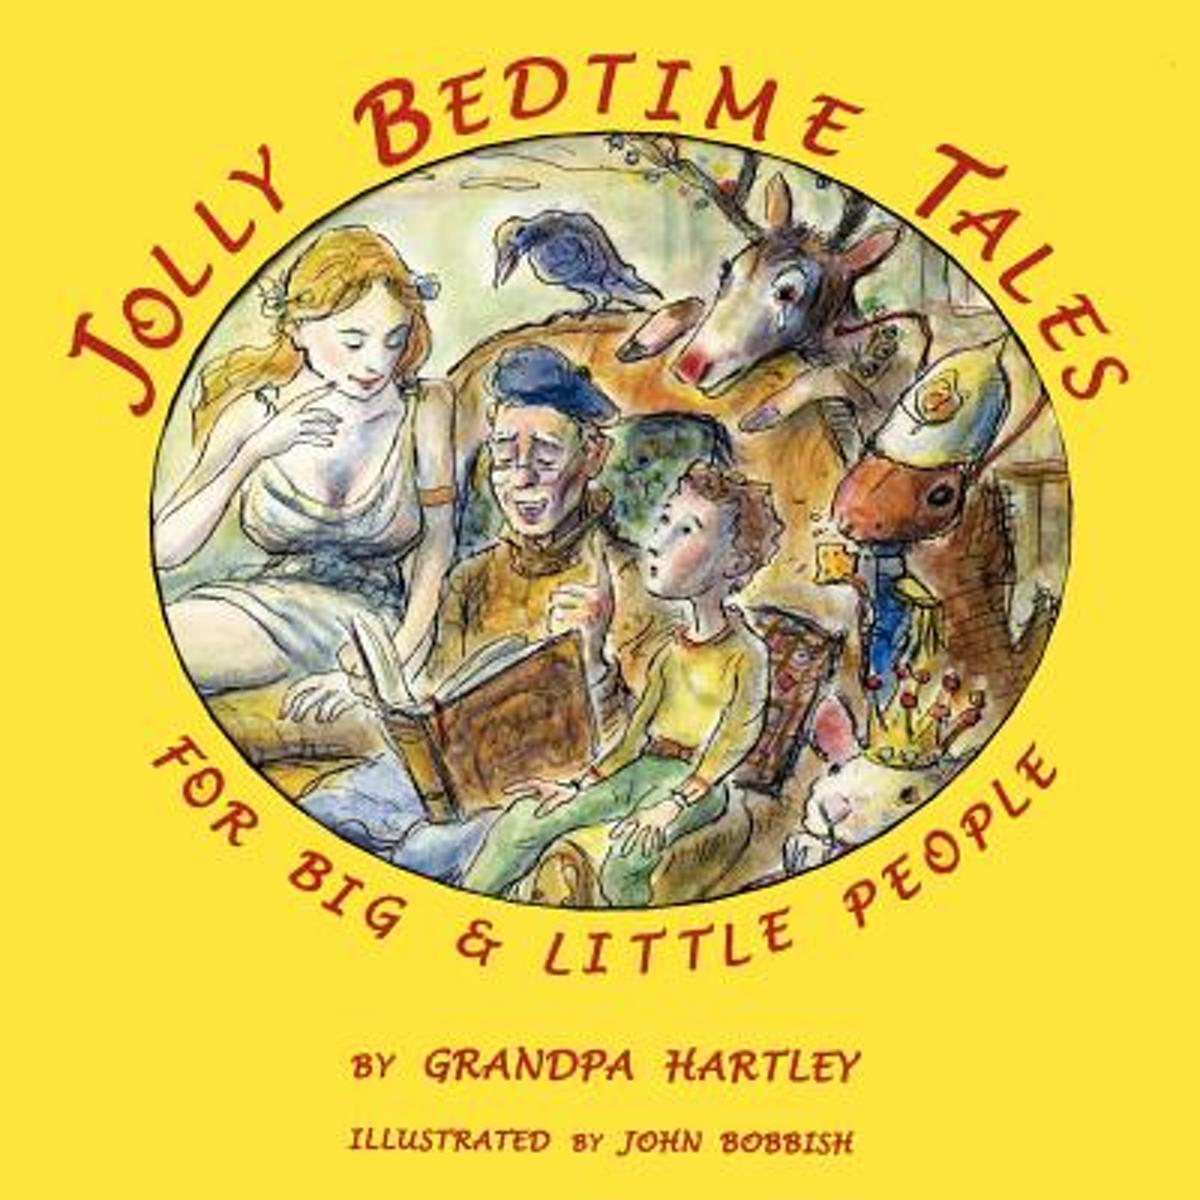 Jolly Bedtime Tales for Big & Little People